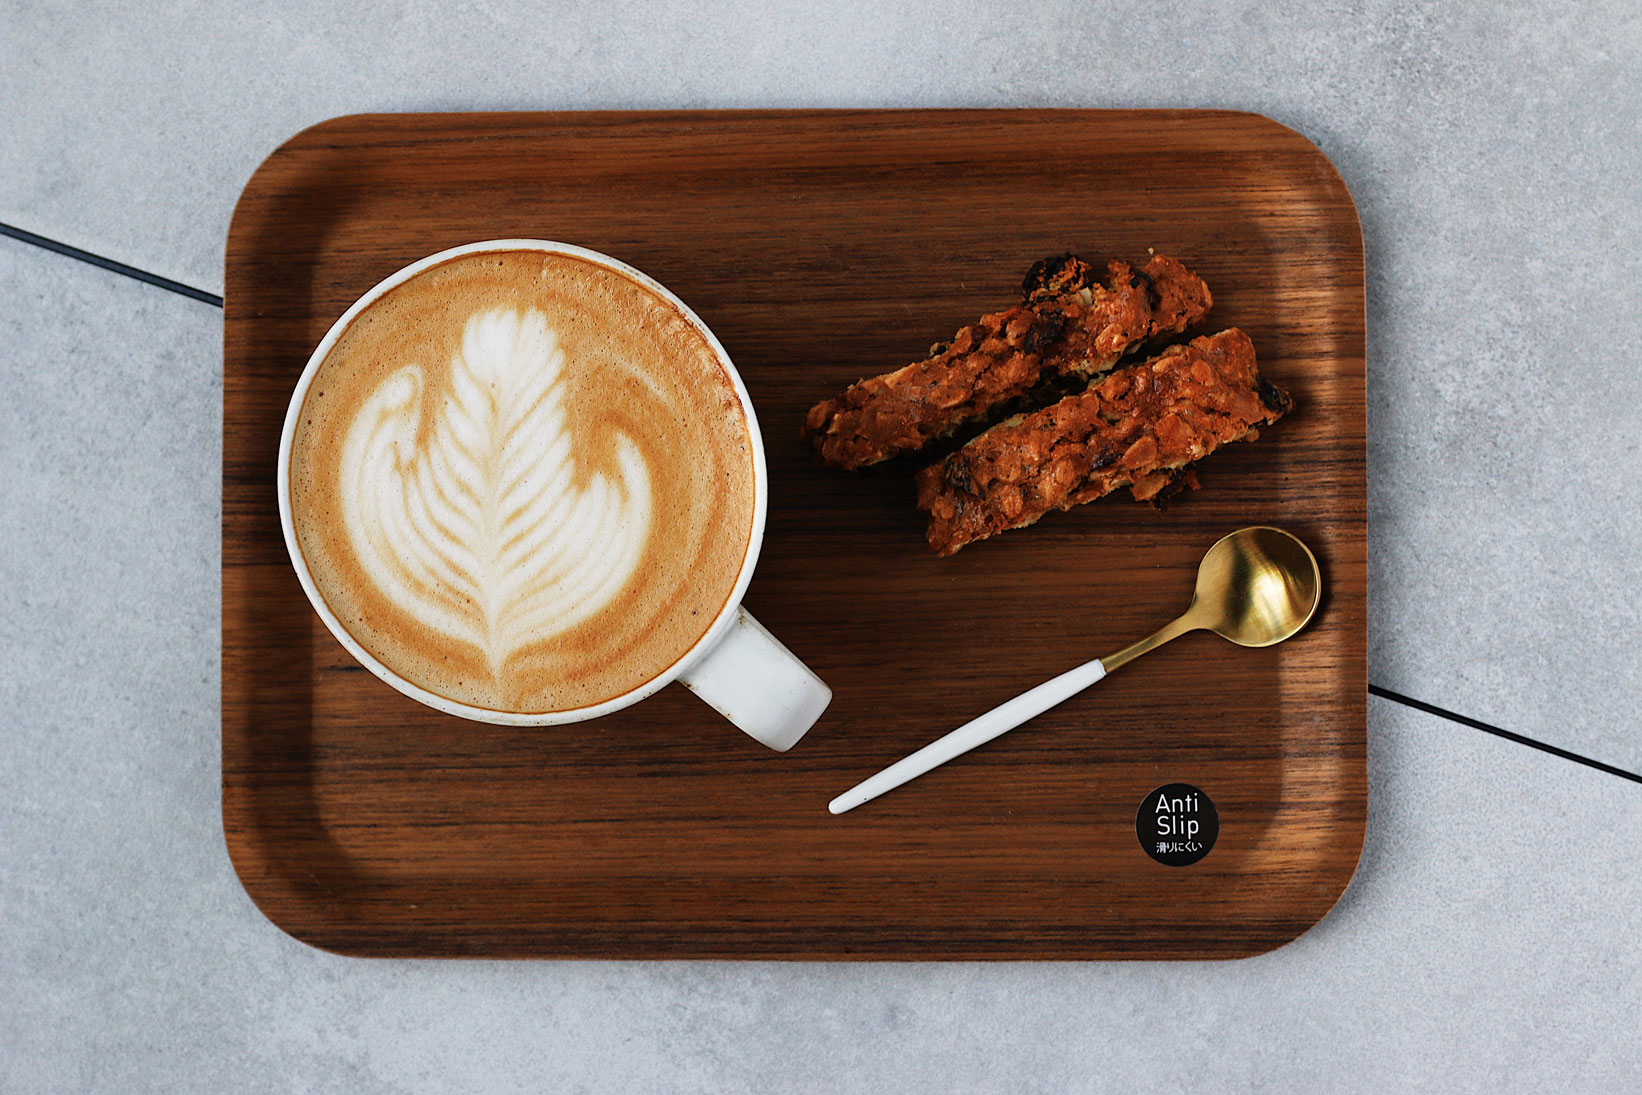 granola-biscotti-with-latte-on-try